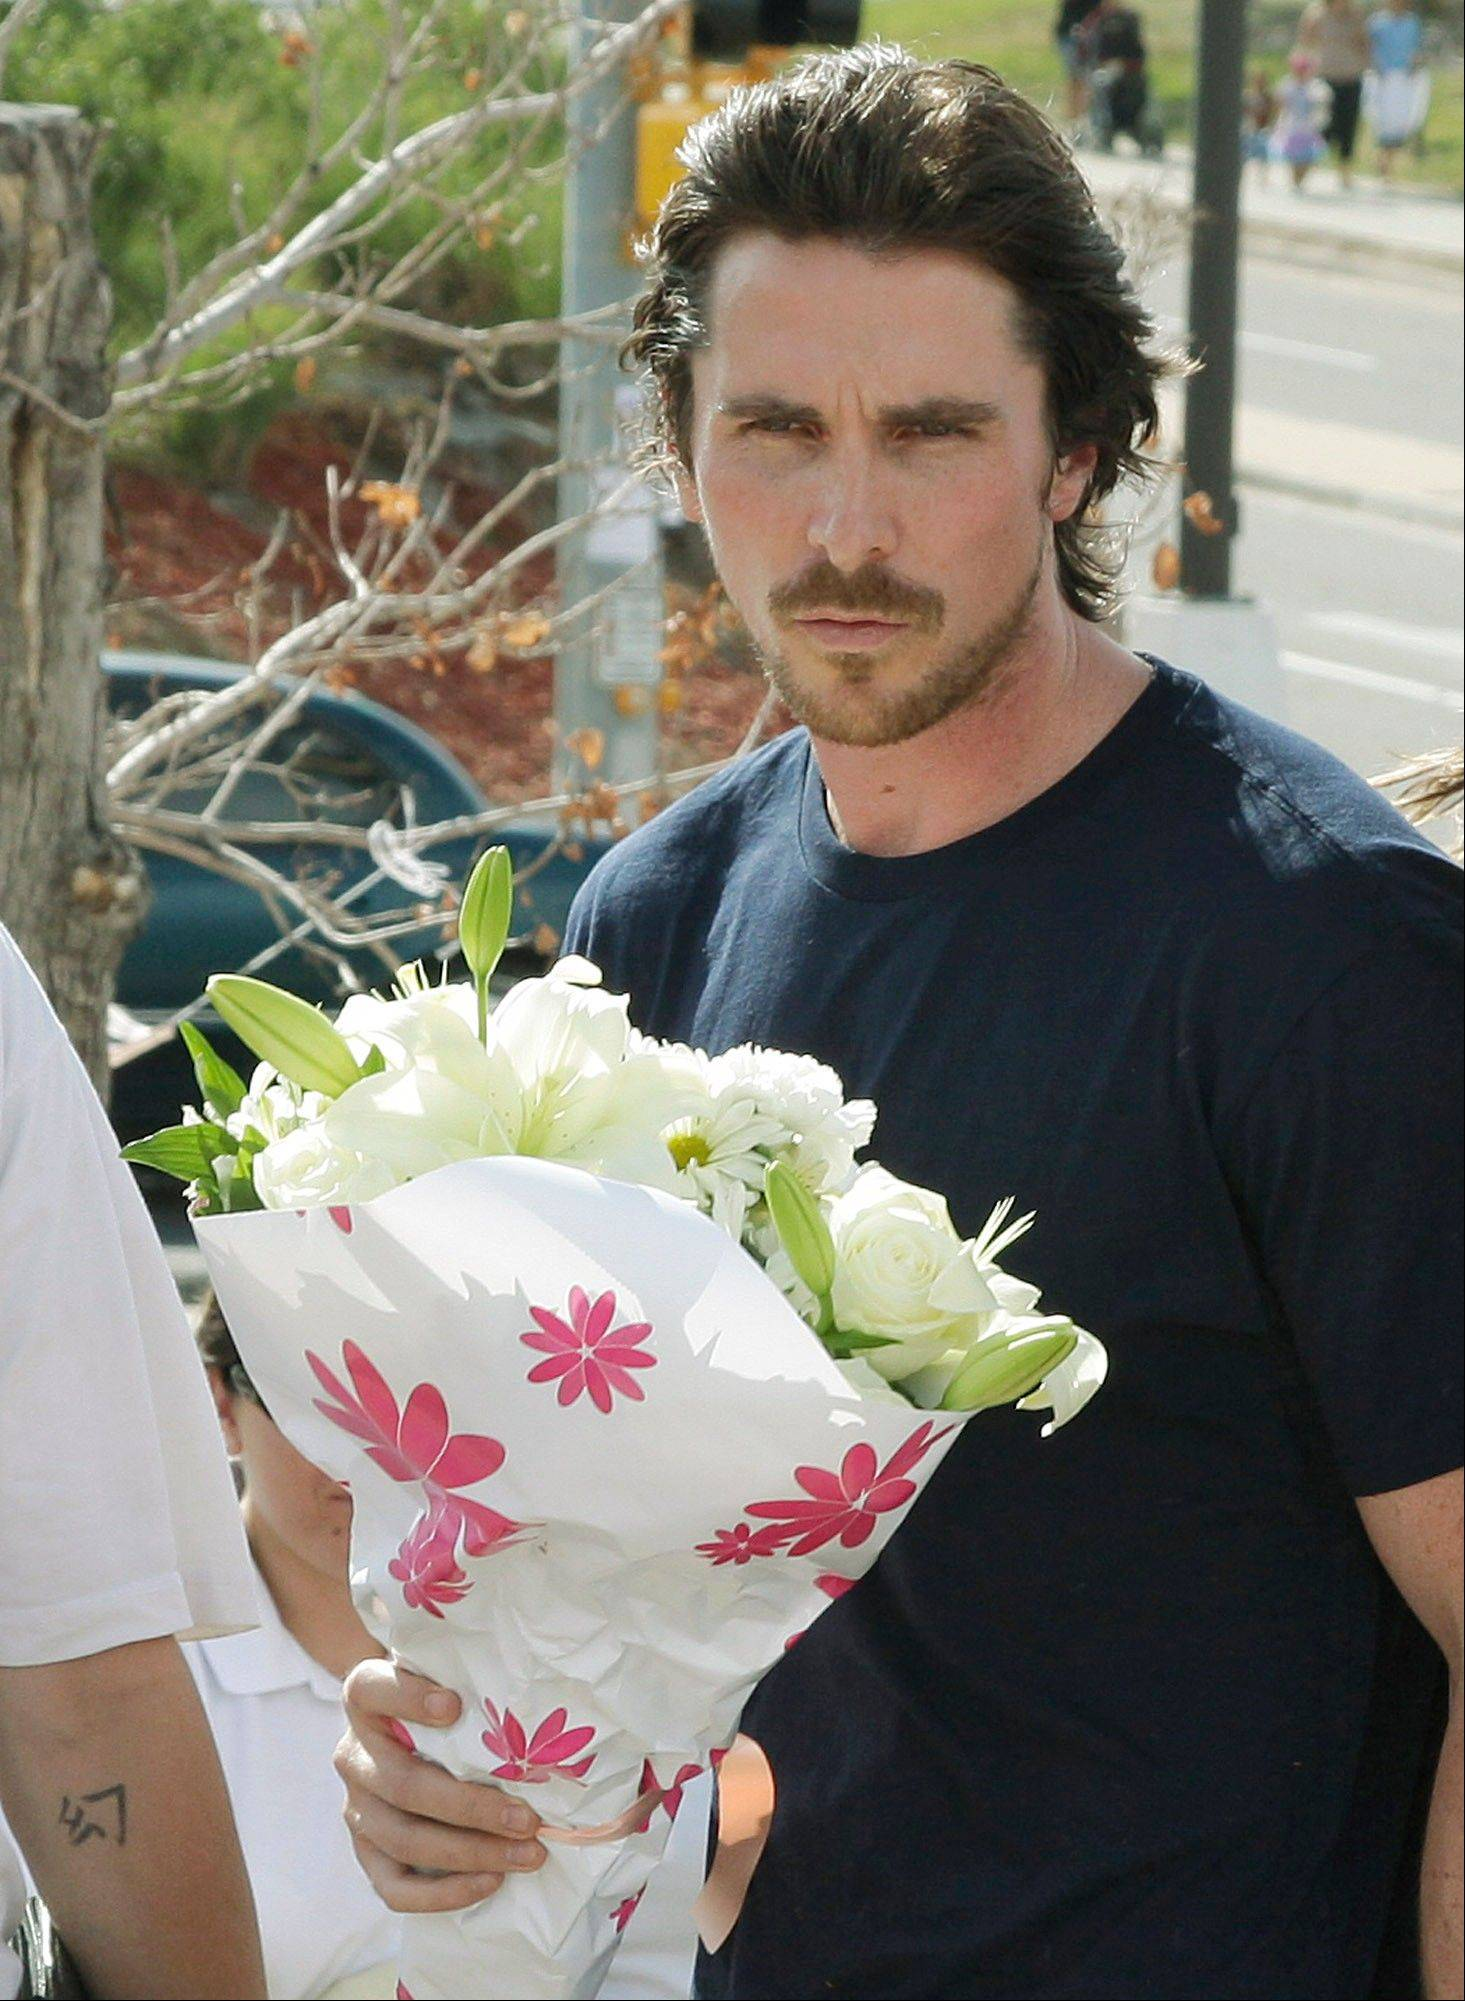 Actor Christian Bale carries flowers Tuesday as he visits a memorial to the victims of Friday�s mass shooting n Aurora, Colo. Twelve people were killed when a gunman opened fire during a late-night showing of the movie �The Dark Knight Rises�, which stars Bale as Batman.